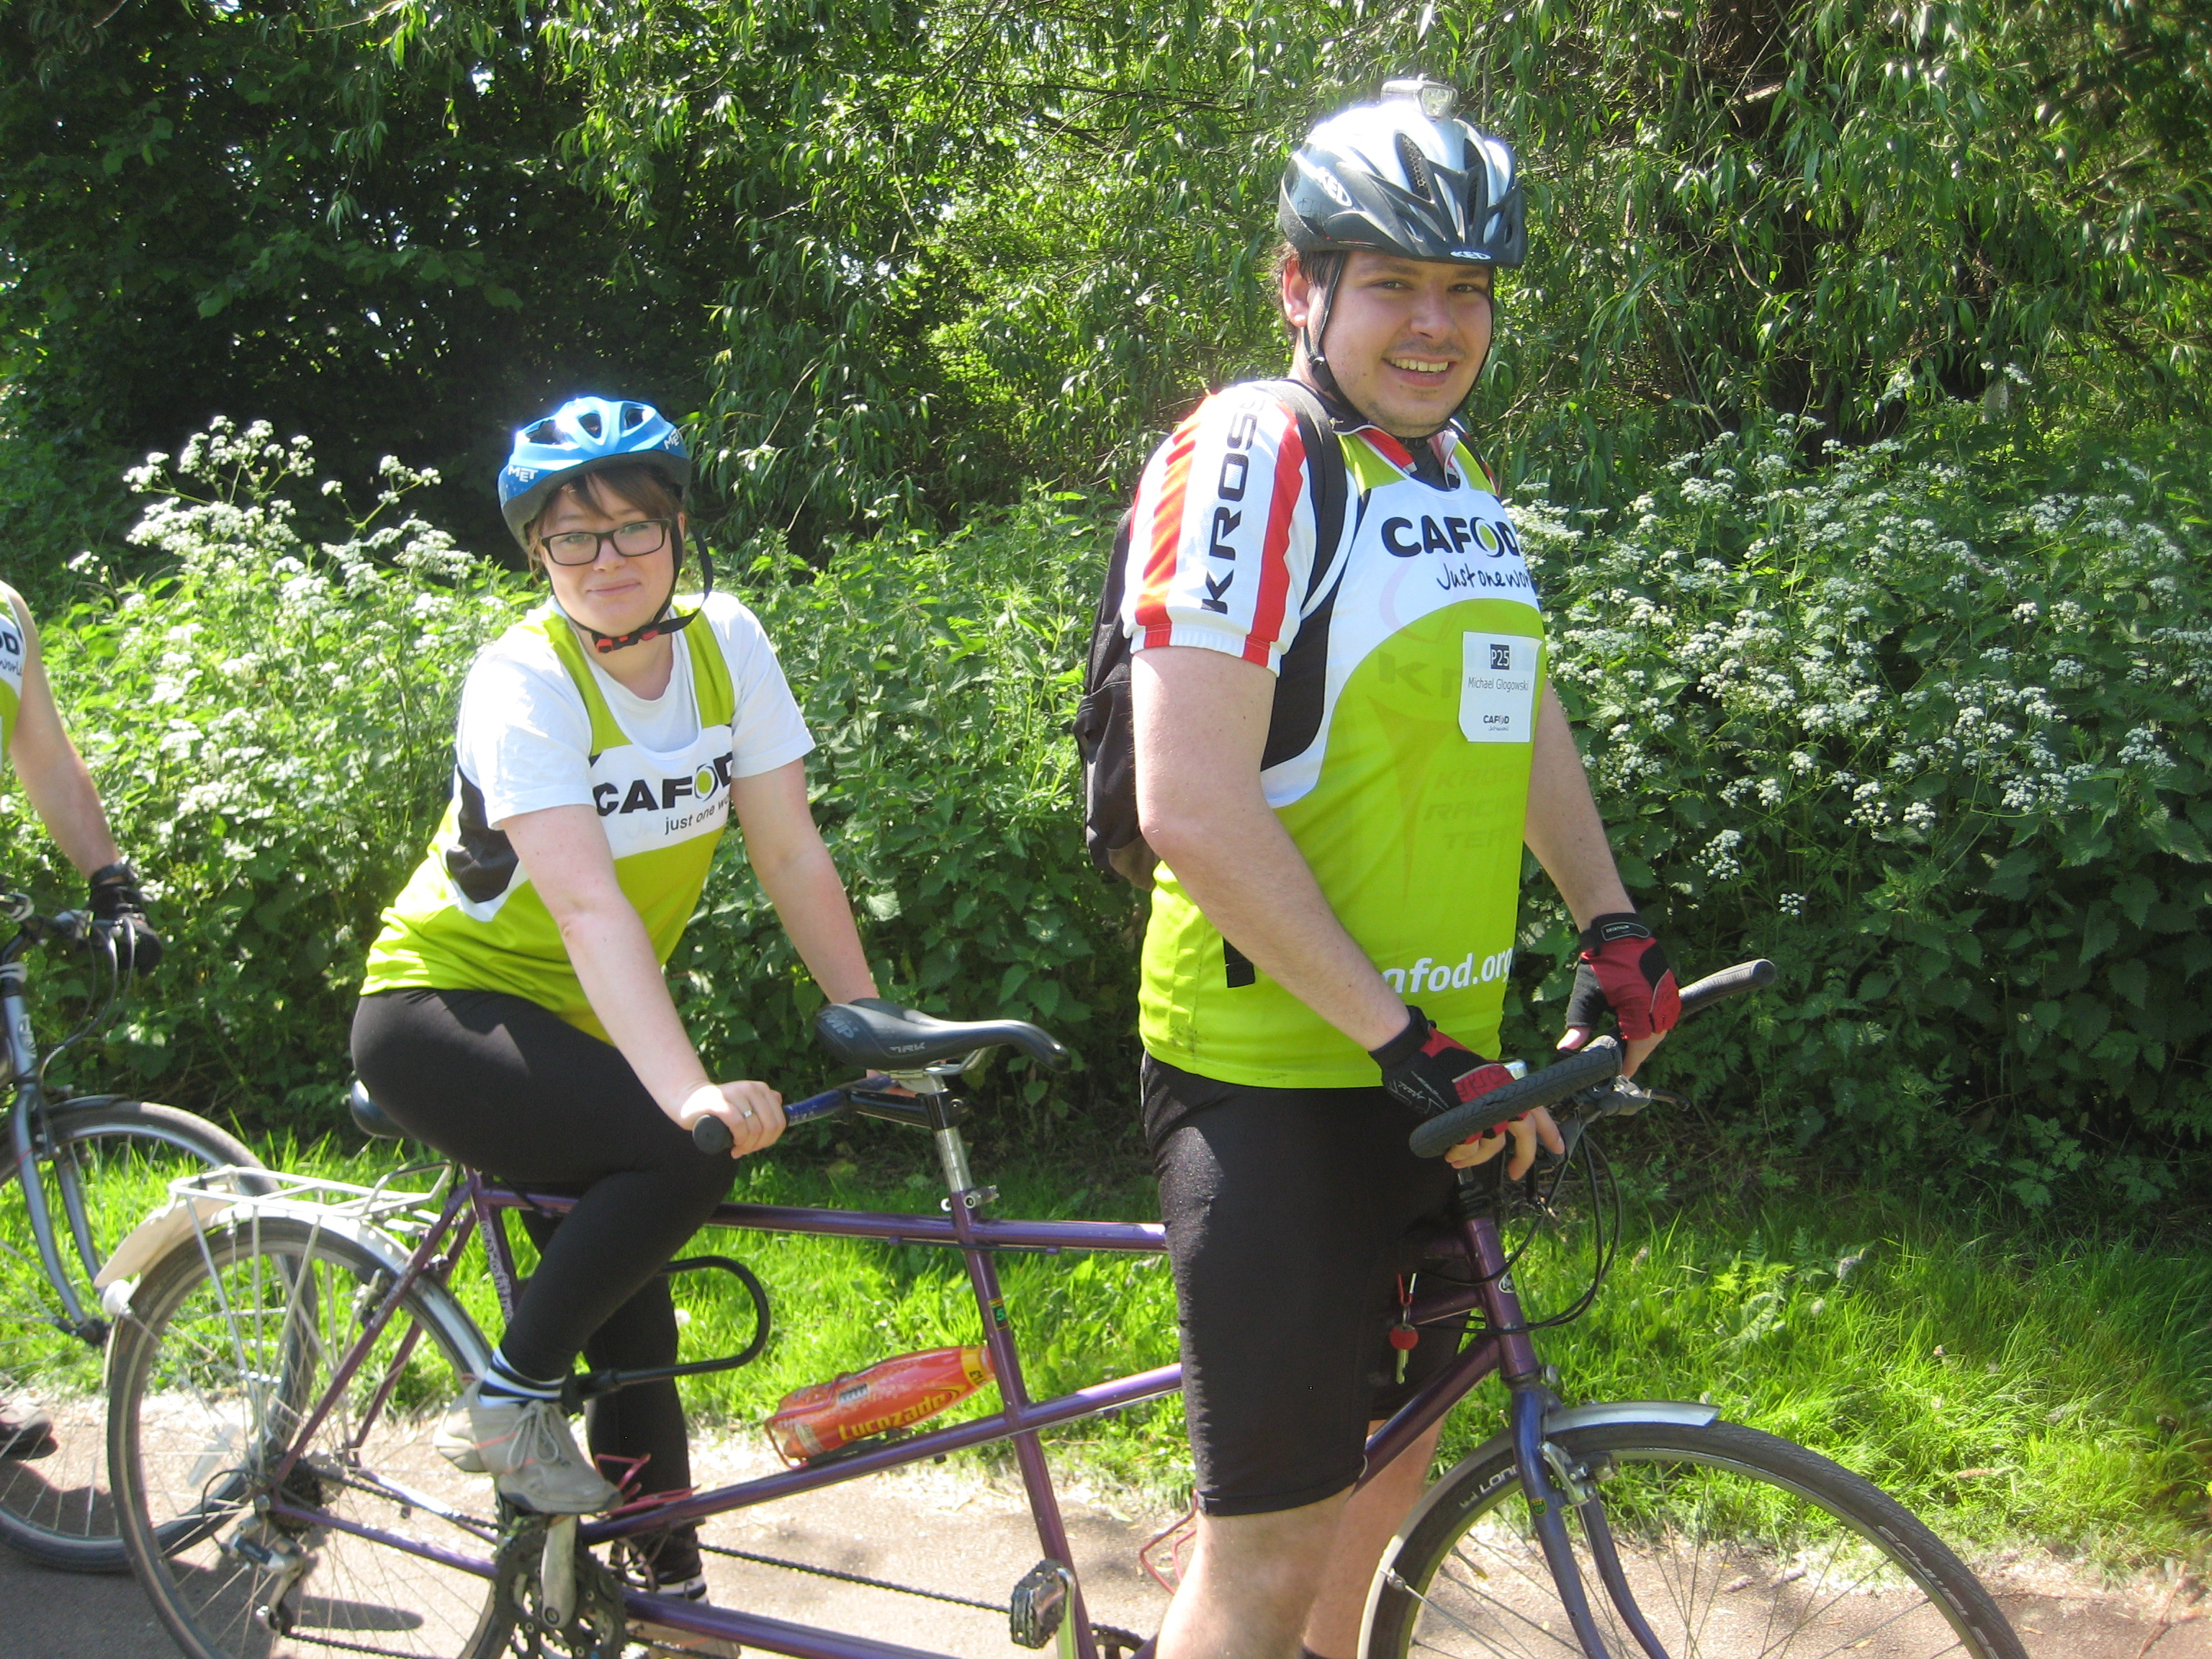 Pedal Against Poverty - Eleanor Heans-Glogowska and Michal Glogowski